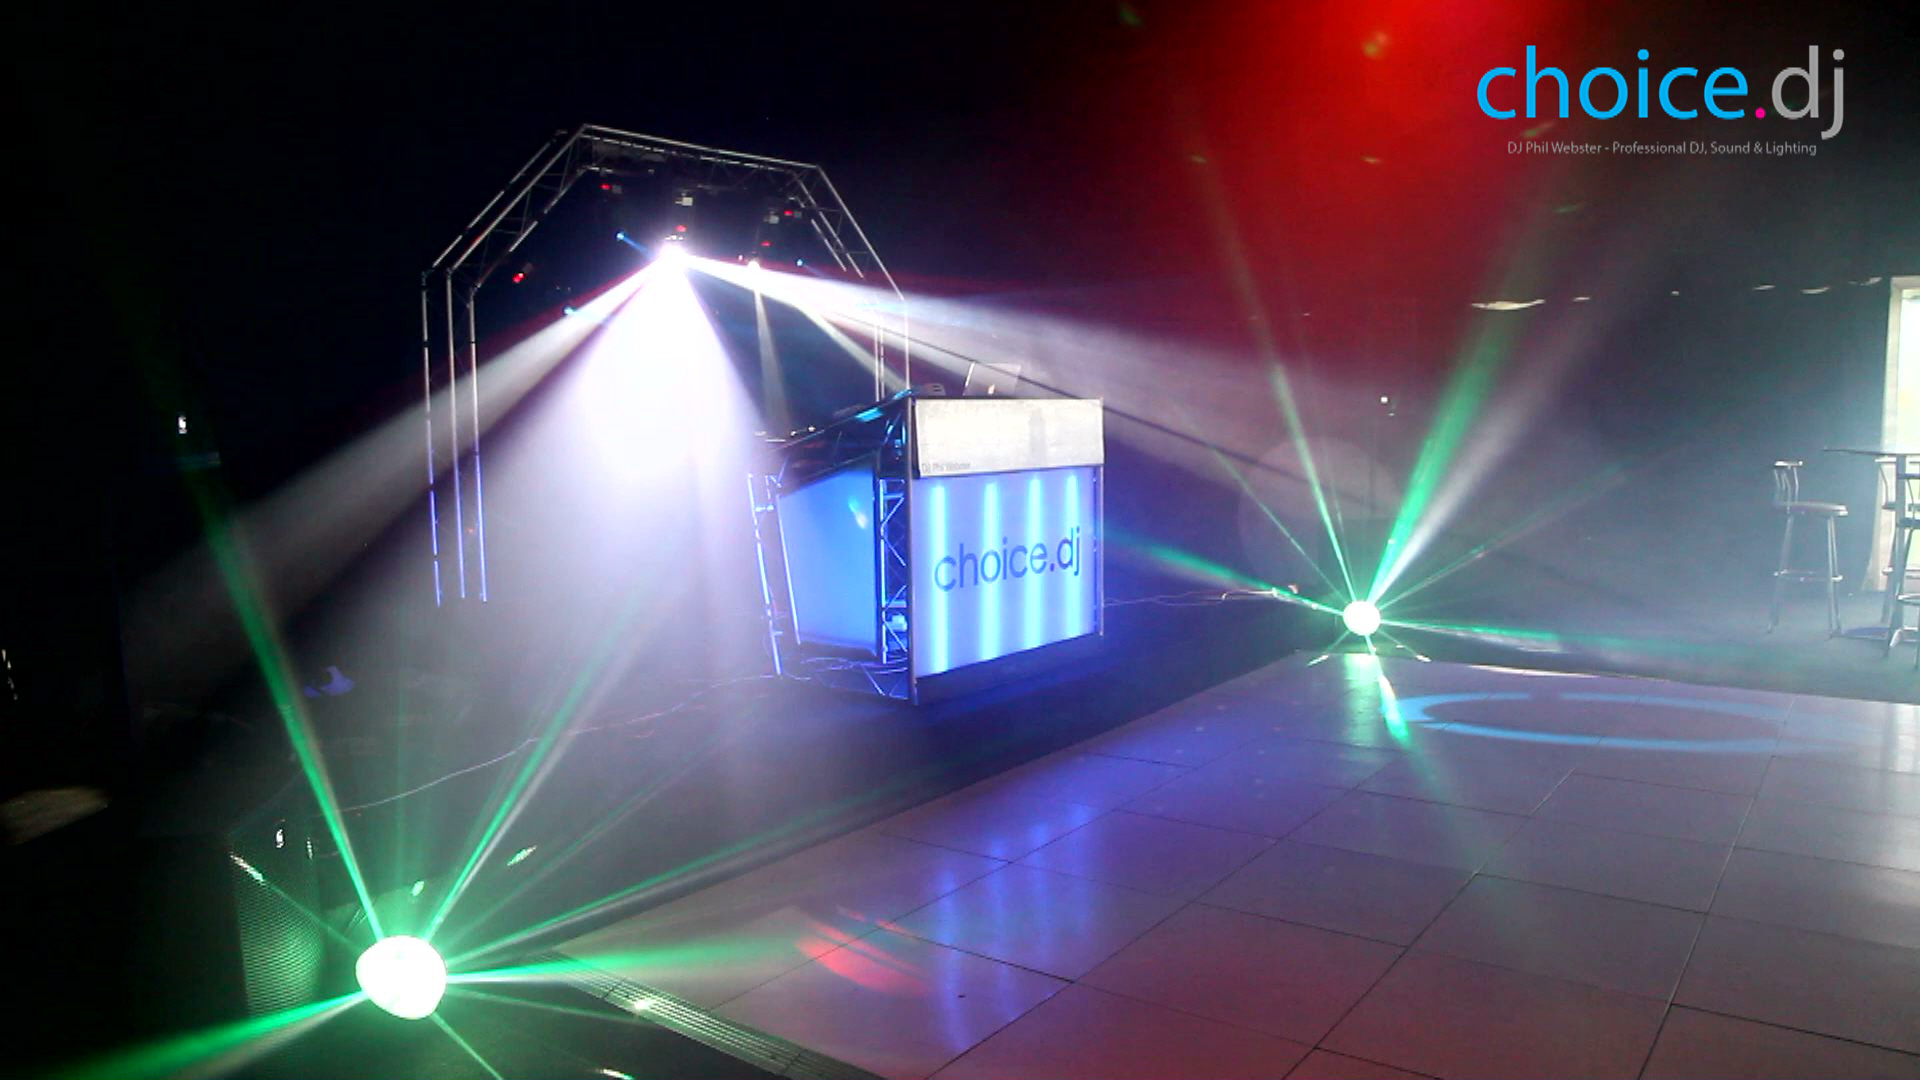 VIDEO: Latest CHOICE.DJ Light Show